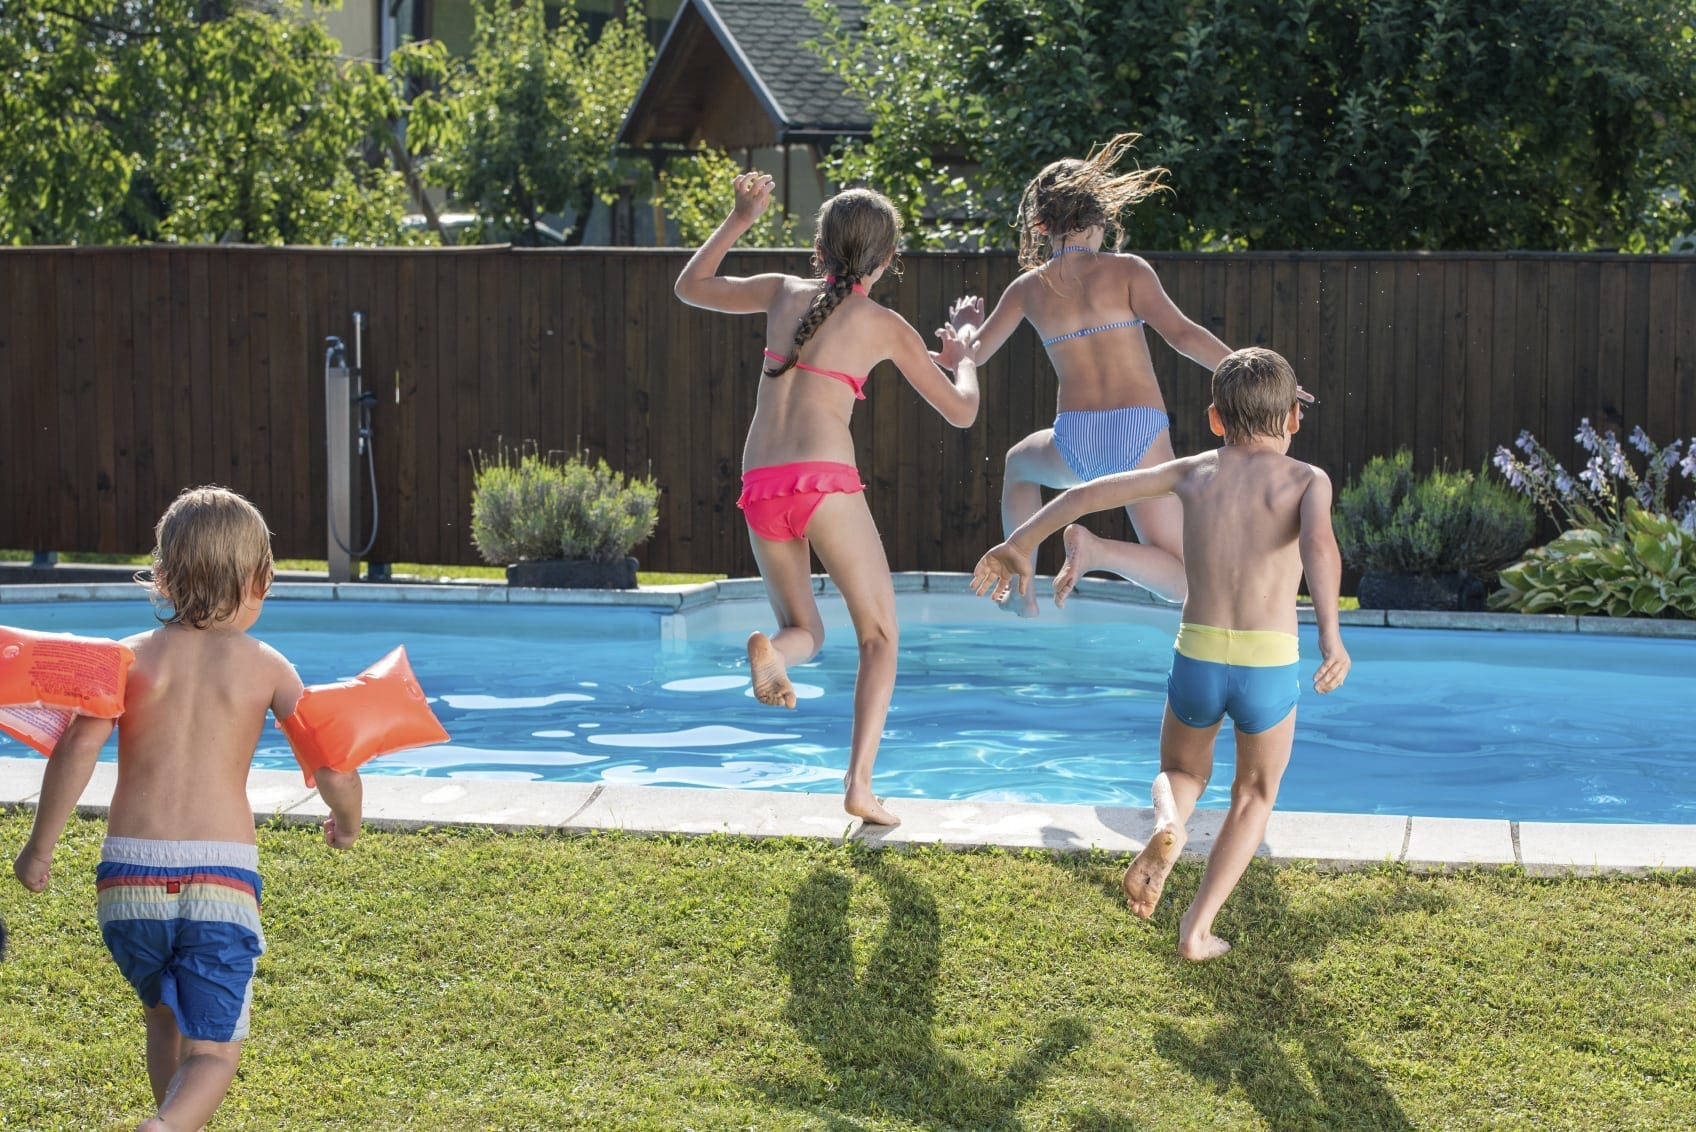 Young Children Jumping Into A Backyard Swimming Pool Stock Photo